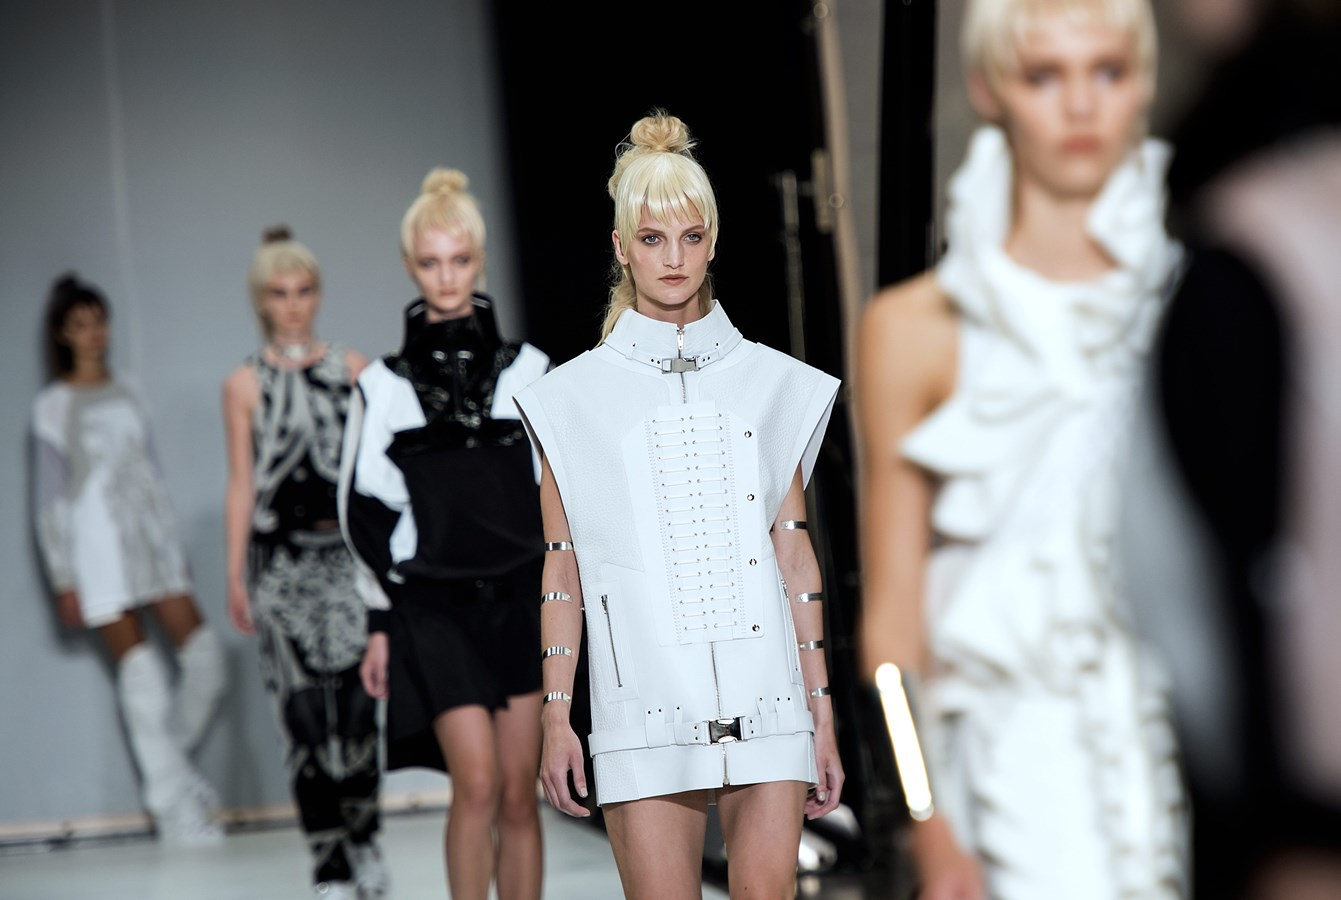 Danish models are now required to undergo health screenings